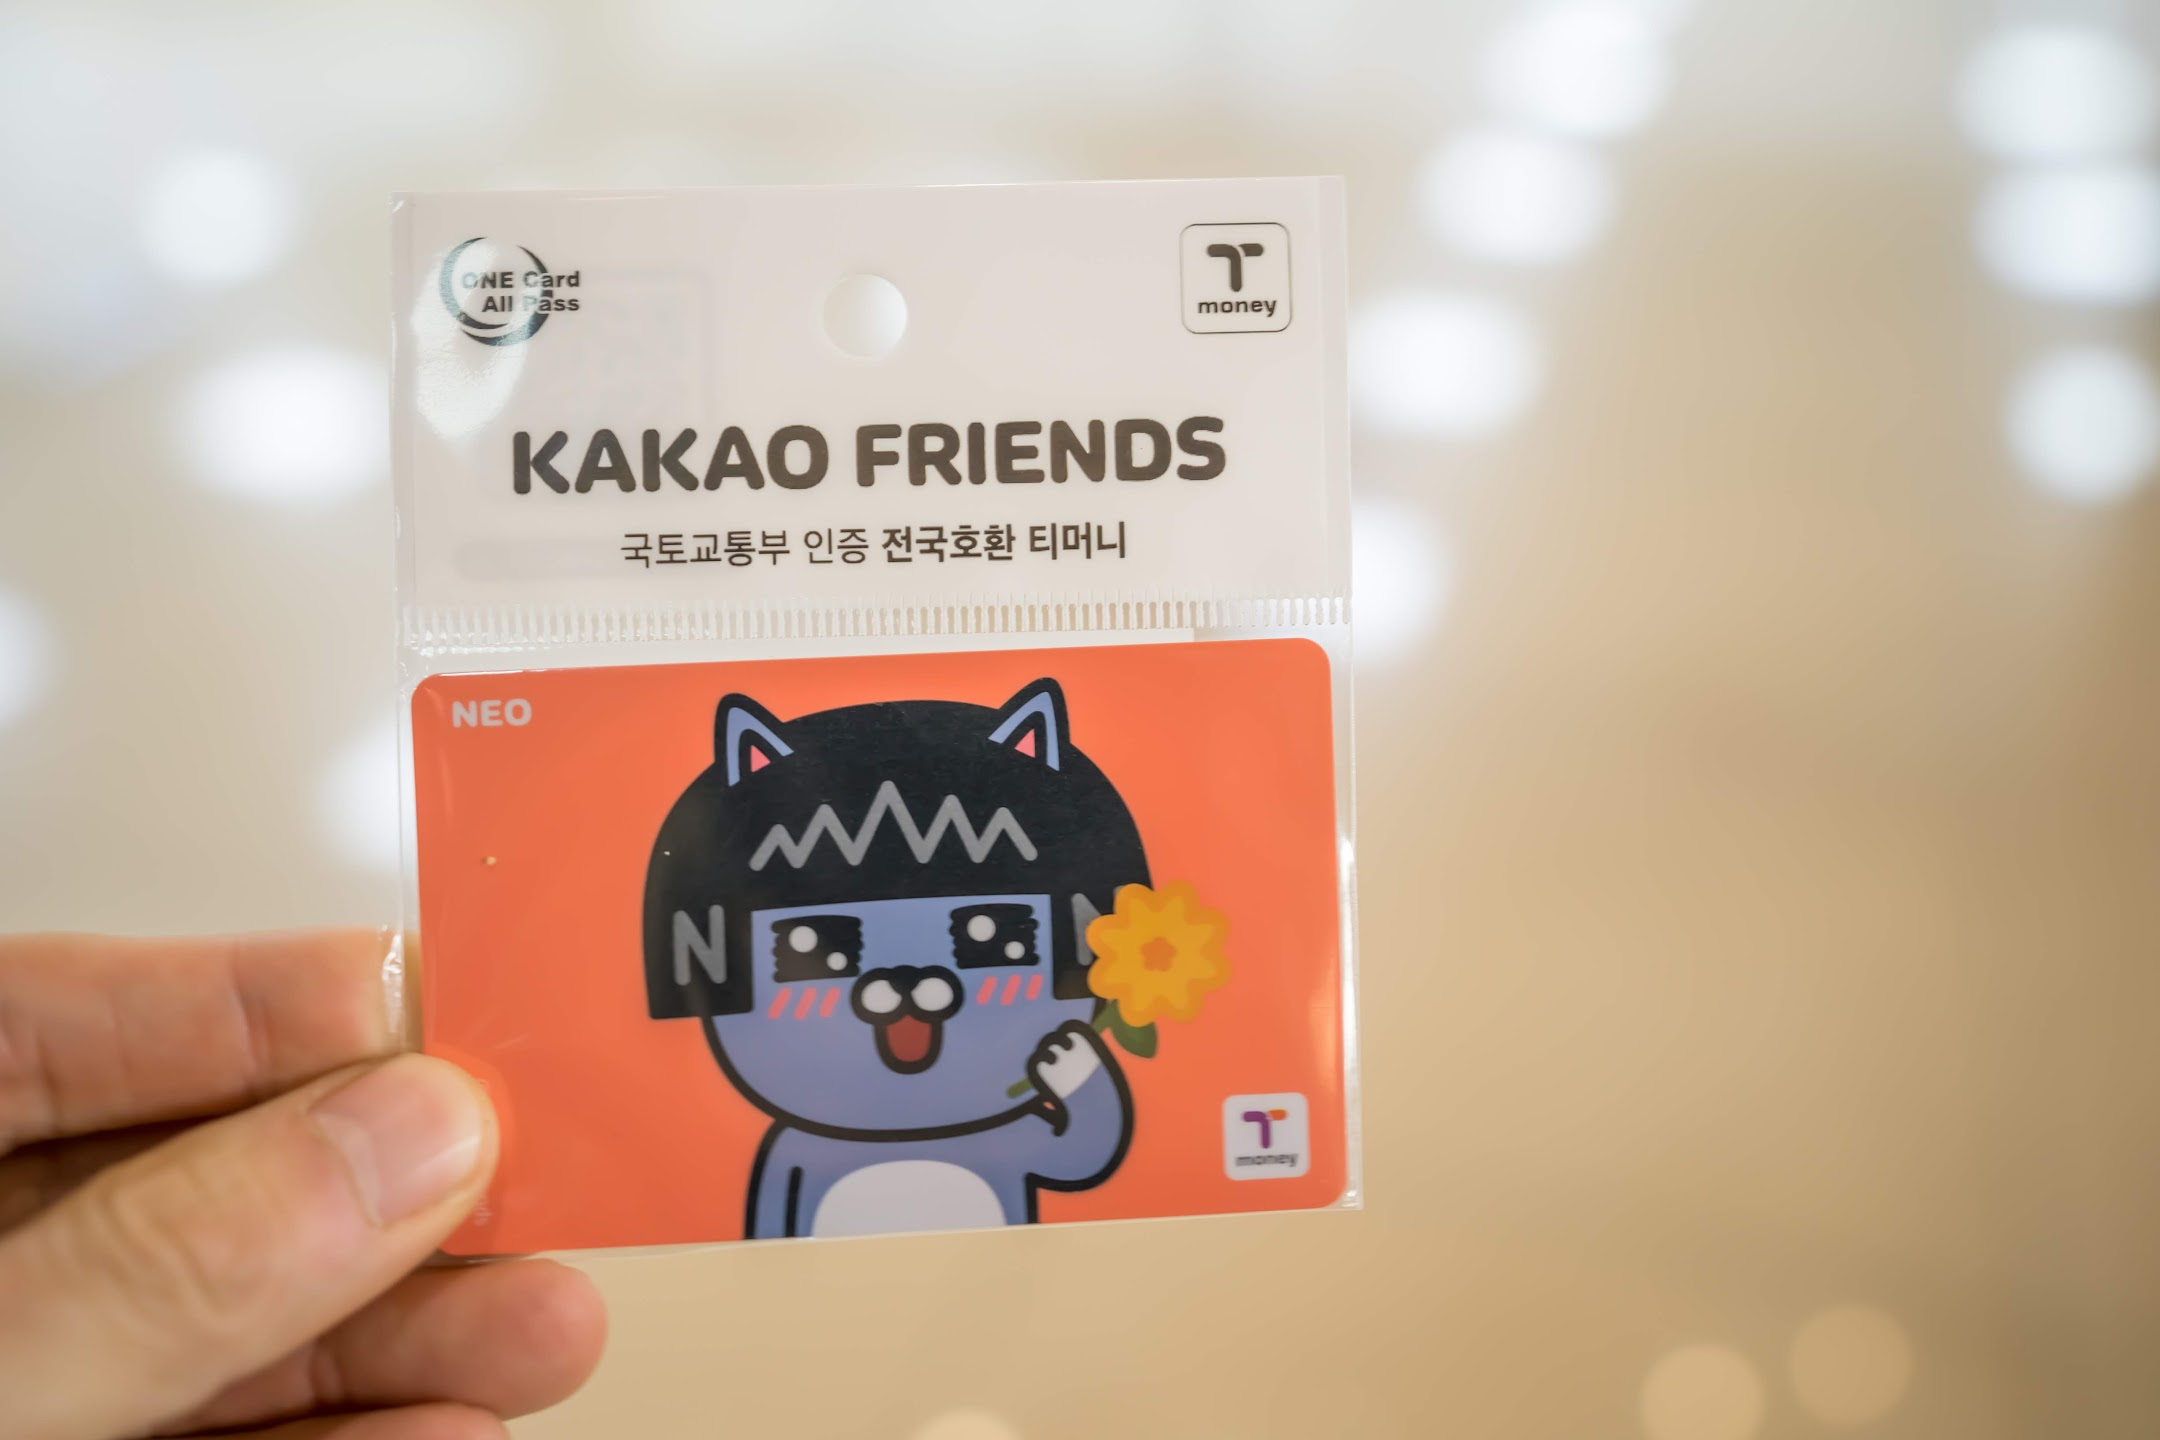 韓国 ソウル T-money KAKAO FRIENDS